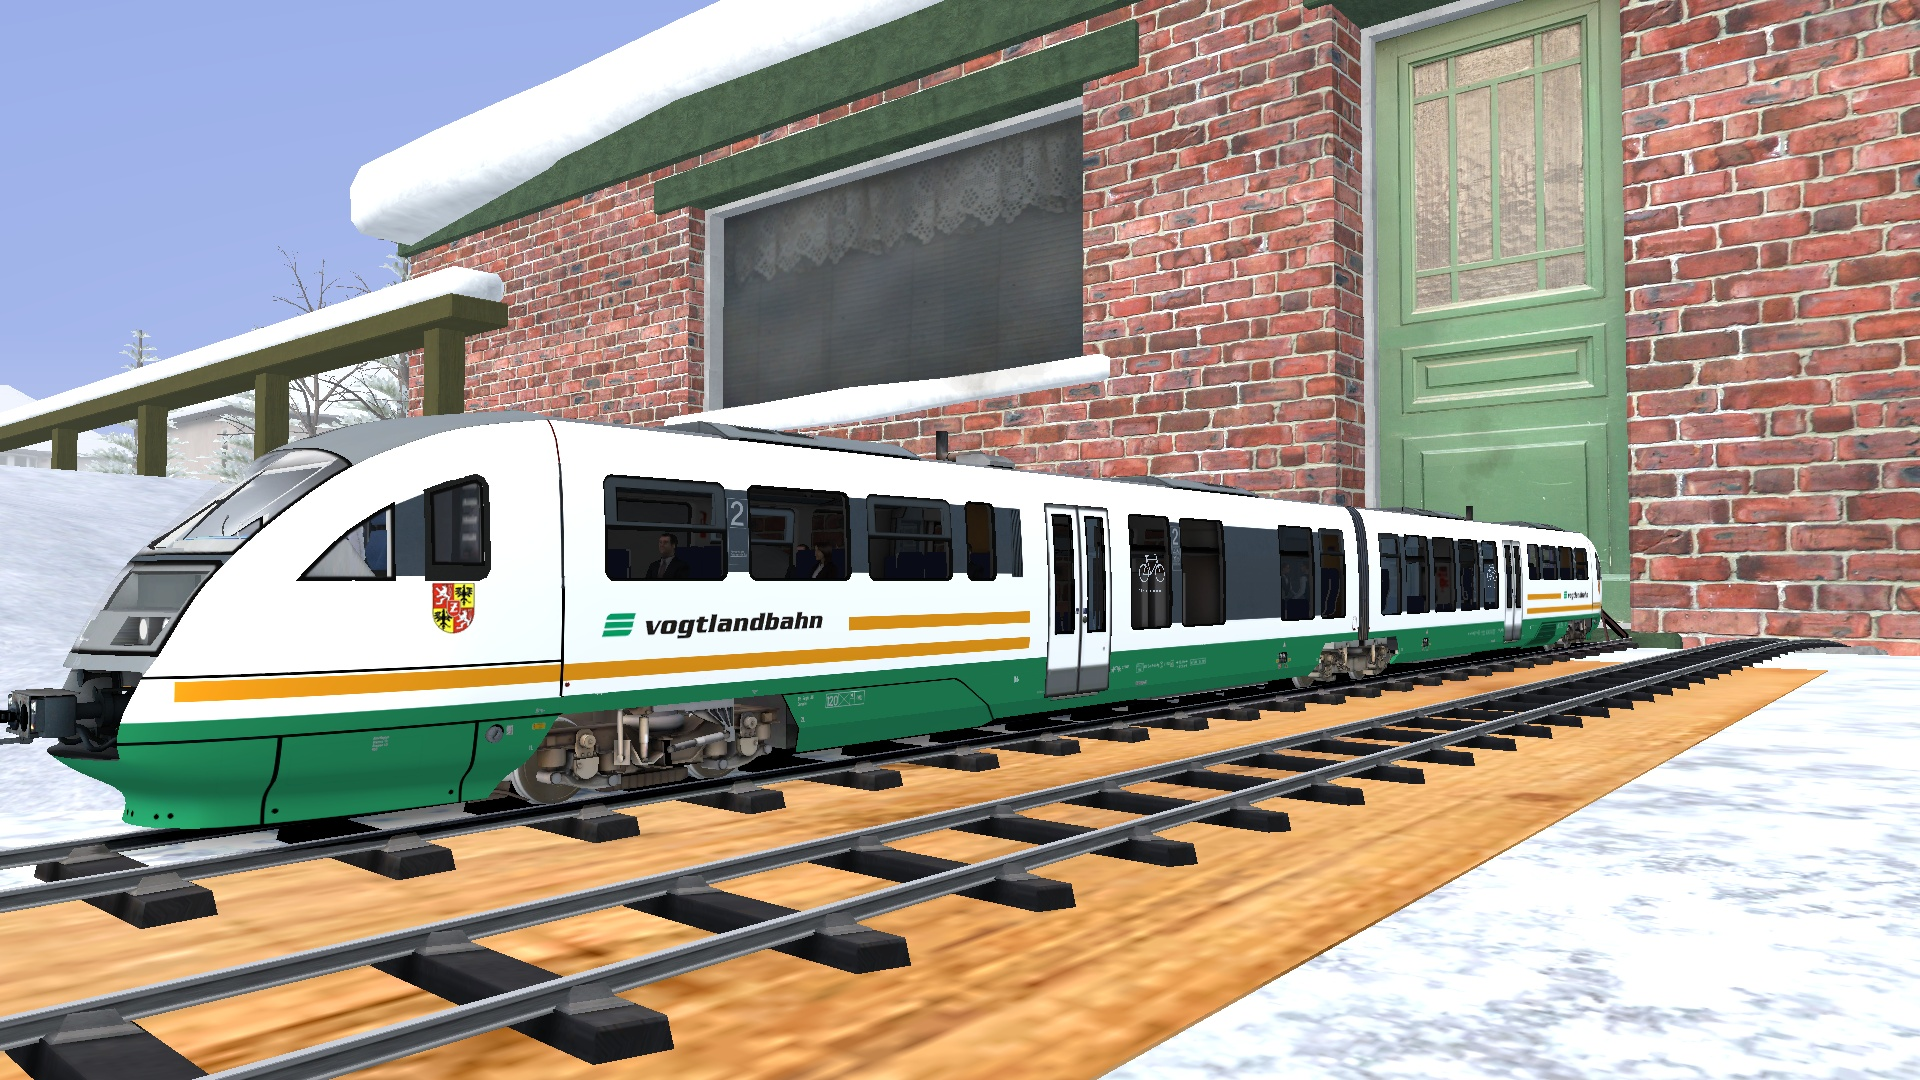 railworks 4 train simulator 2013 add ons kein support seite 6. Black Bedroom Furniture Sets. Home Design Ideas